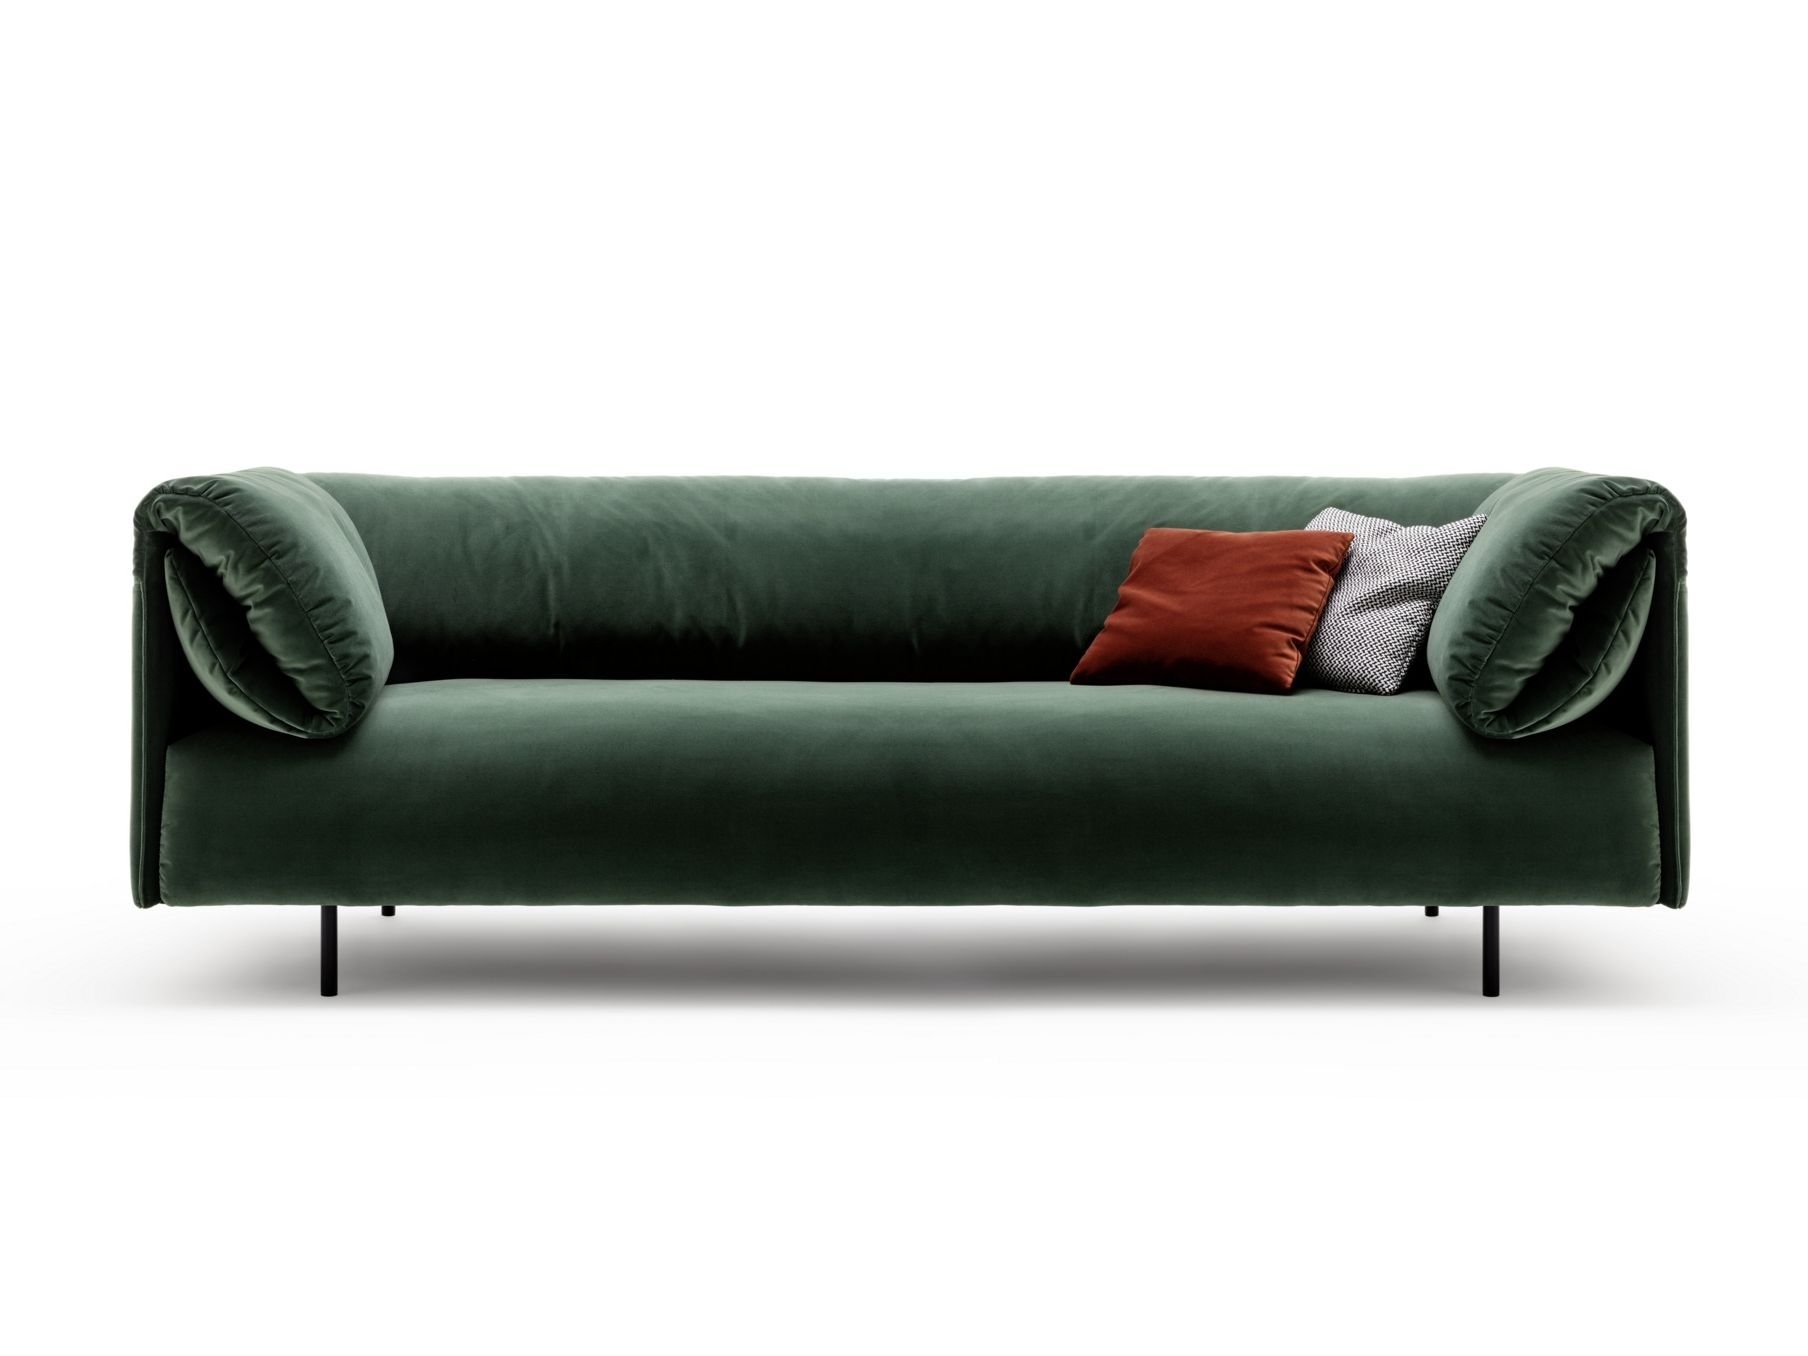 Rolf Benz Couch Rolf Benz Alma Sofa Available At Studio Anise Rolf Benz U S